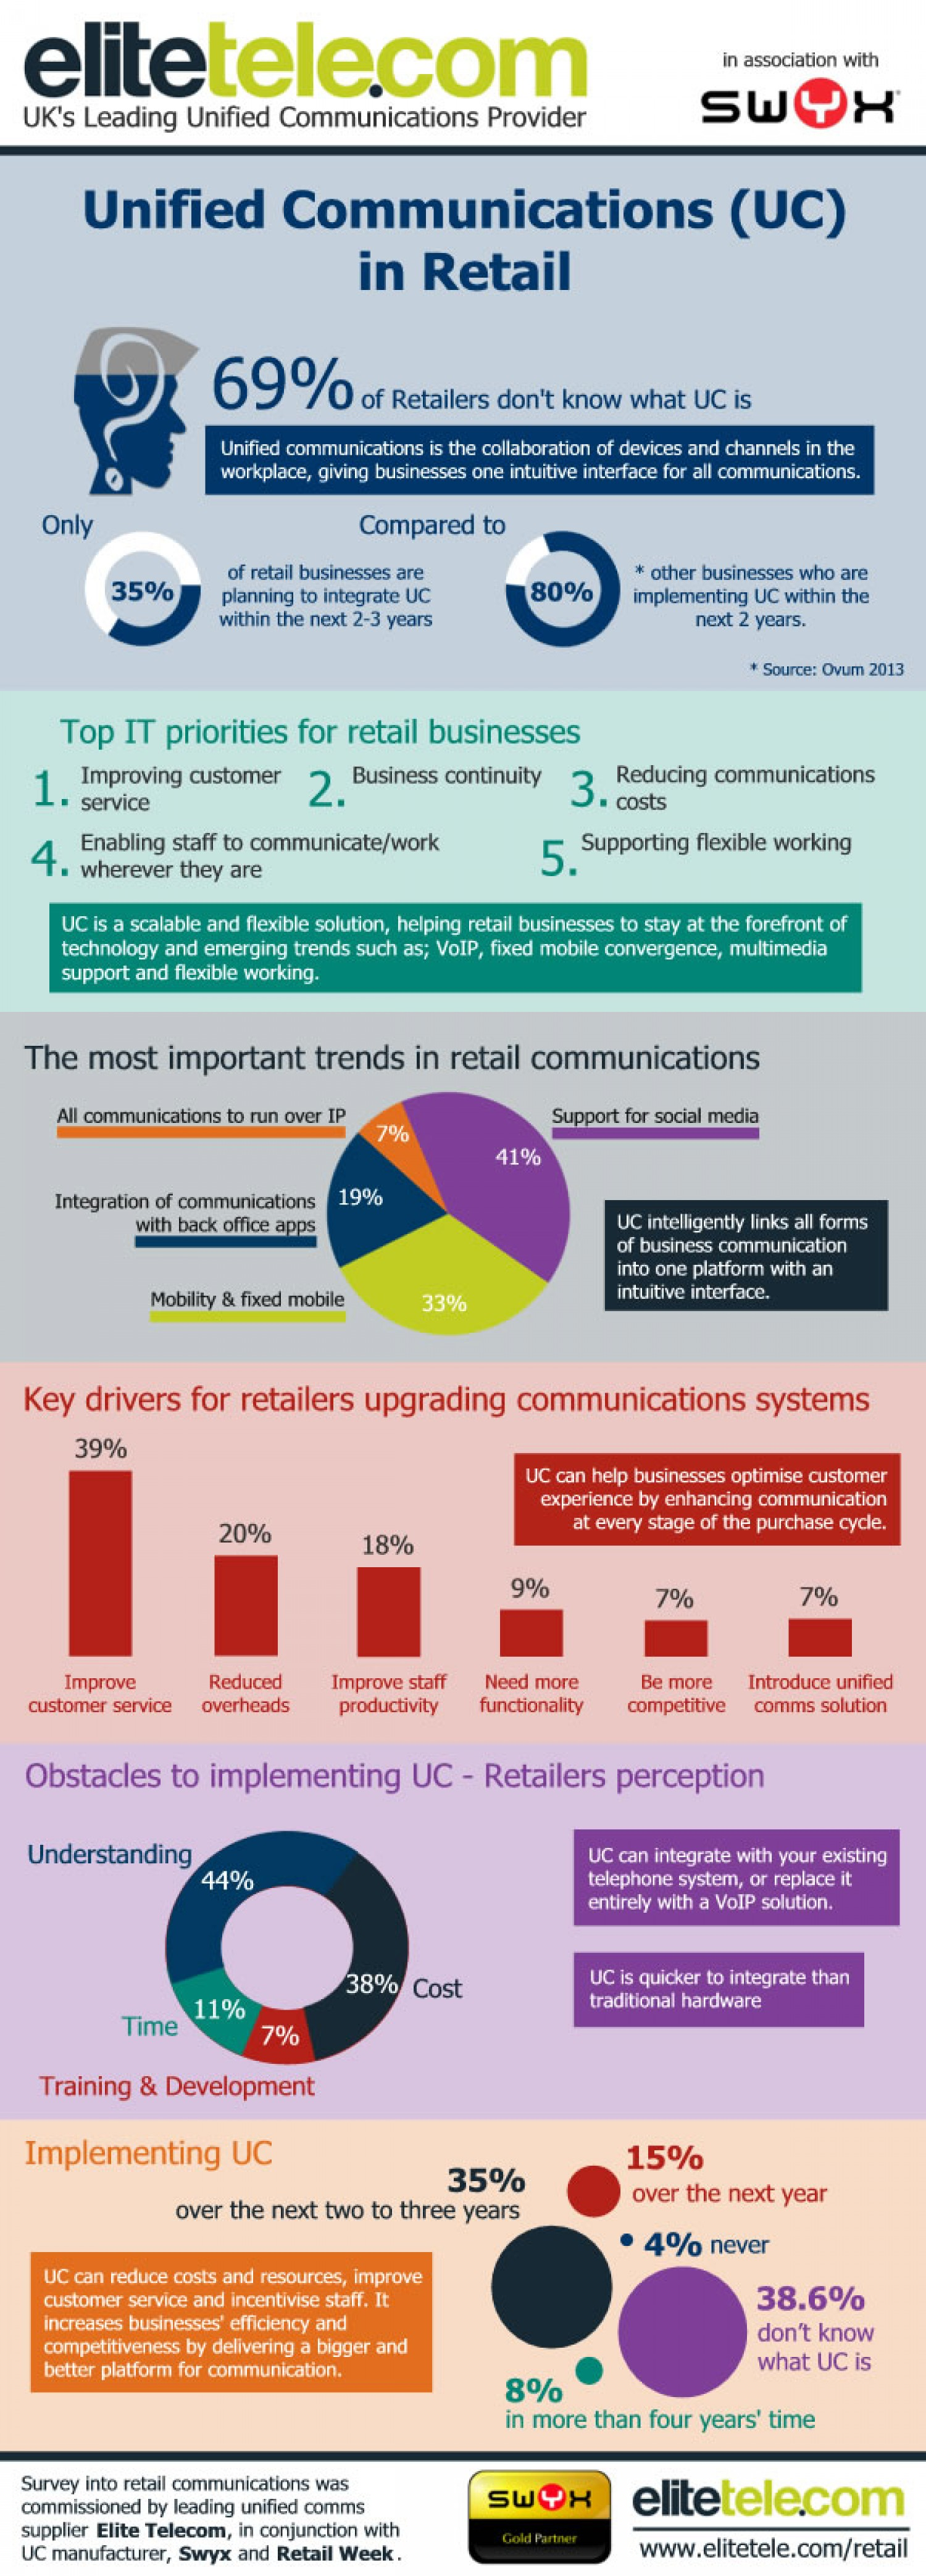 Unified communications (UC) in retail